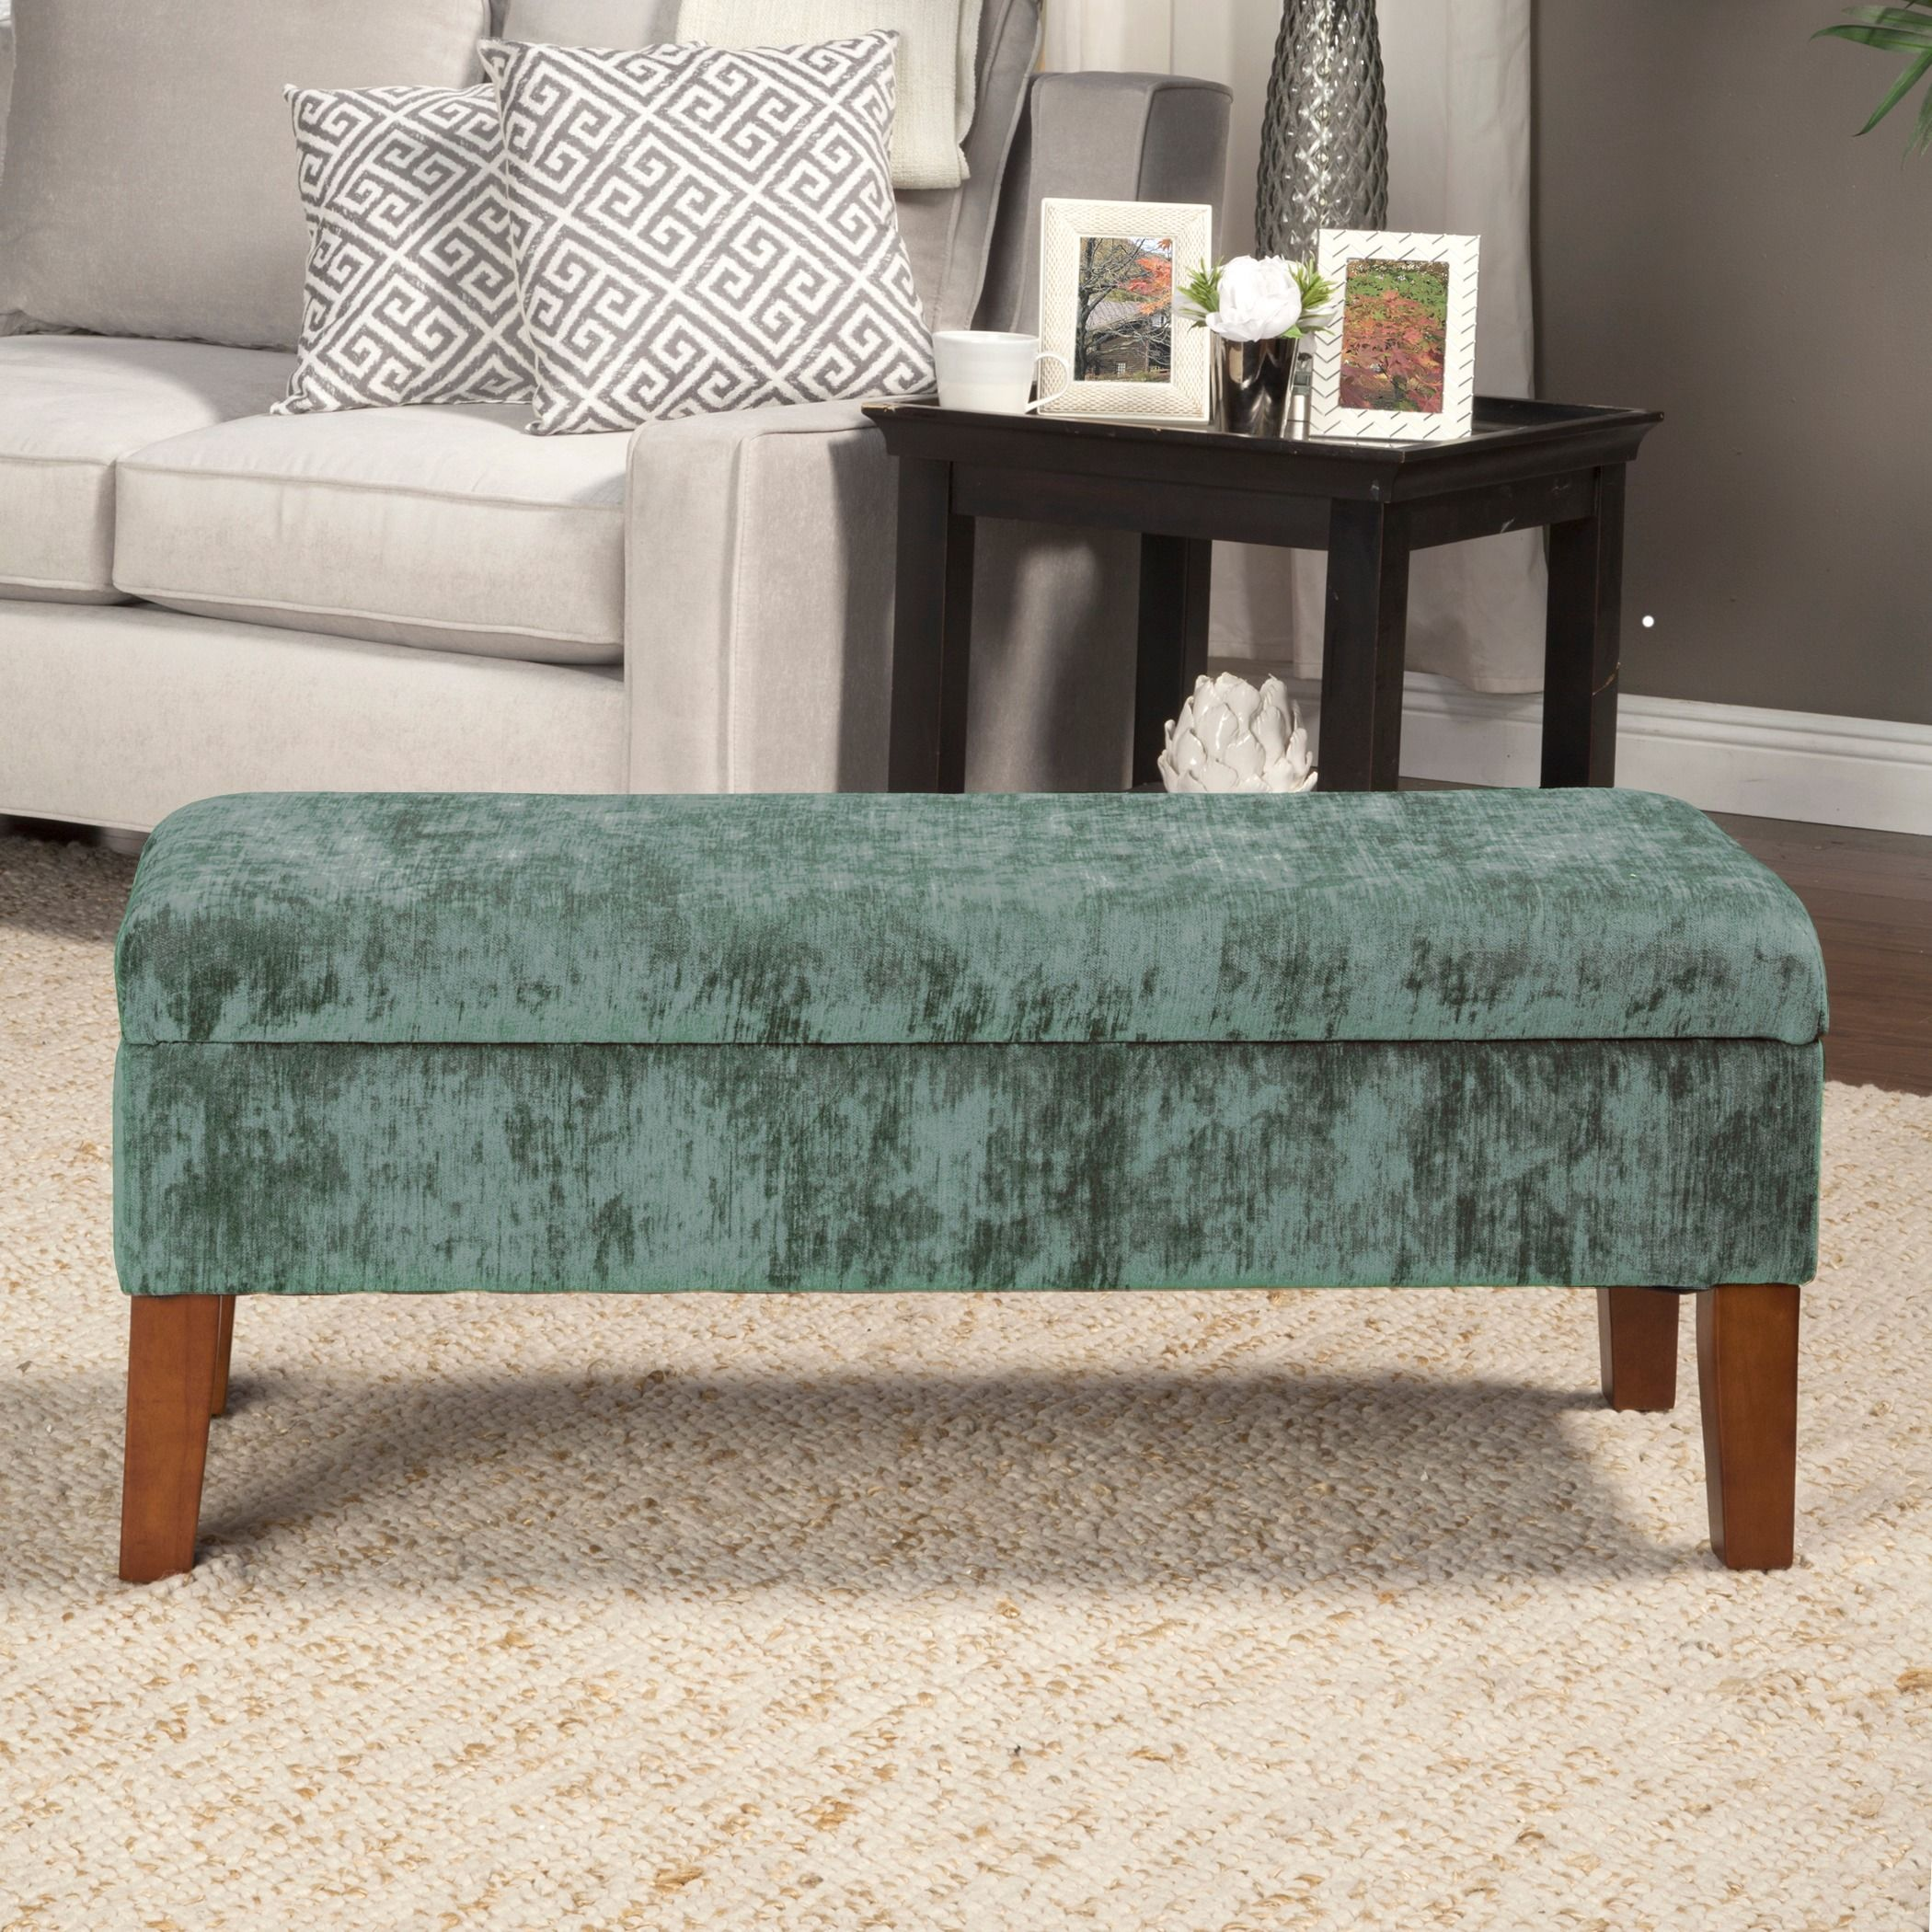 This Vibrant Velvet Teal Storage Bench Sits Atop Solid Wood Legs In A Brown  Finish.